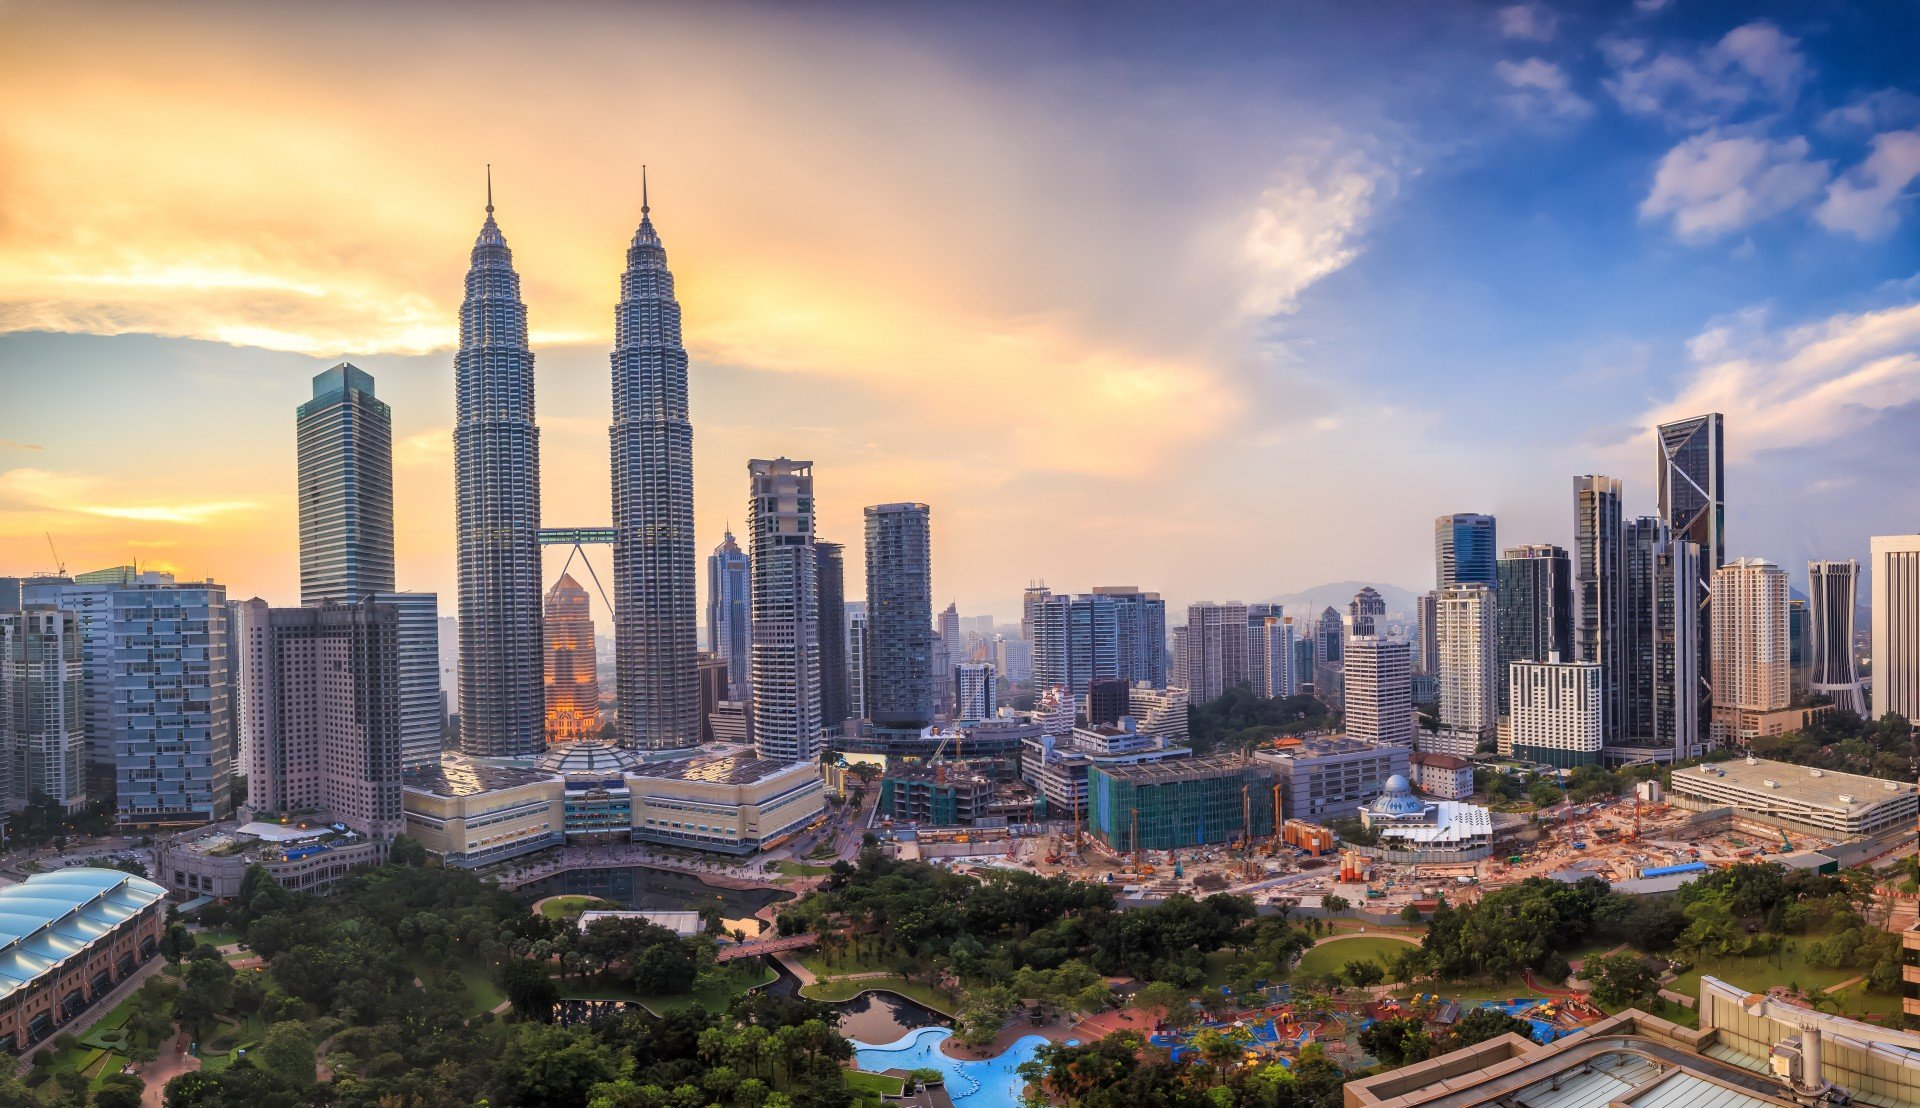 The declaration of emergency, the first since racial riots in 1969, was issued on January 12 by King Al-Sultan Abdullah, who acted on the advice of Prime Minister Muhyiddin Yassin. On the same day, the Malaysian health ministry reported 3,309 new coronavi